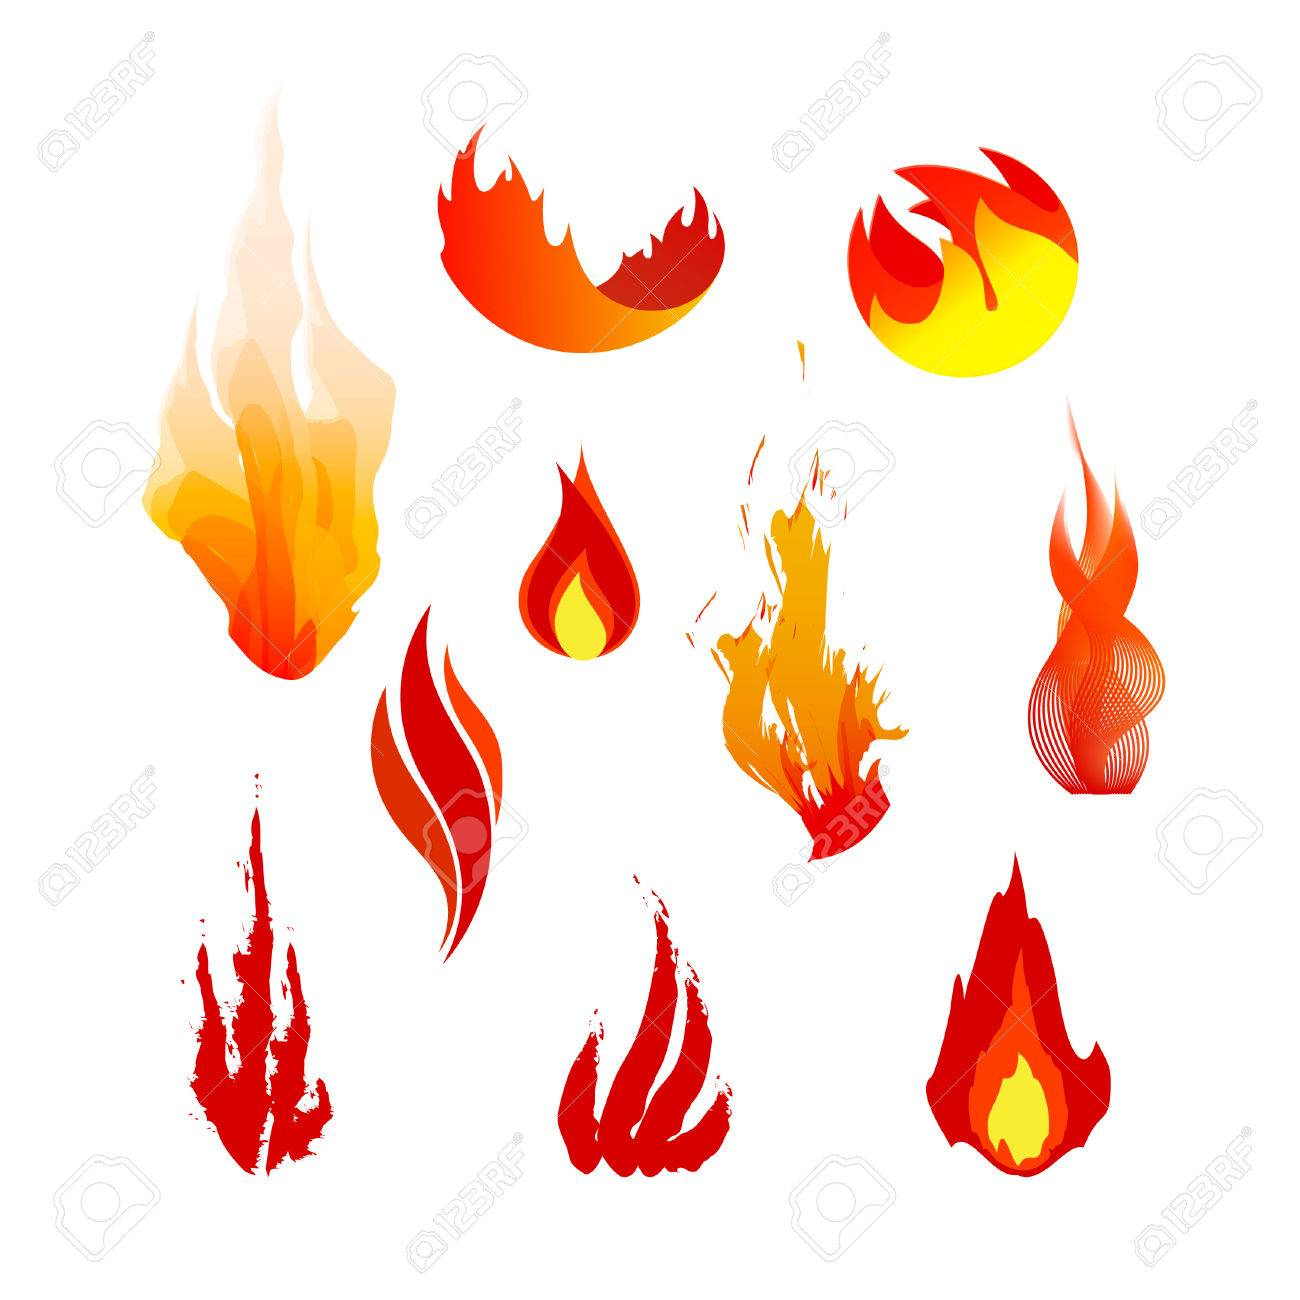 Fire hazard symbol smbolos de map of asia philippines set of red orange and yellow fire symbols vector logo elements 44483242 set of red orange and yellow fire symbols vector logo elements flame icons photo biocorpaavc Gallery